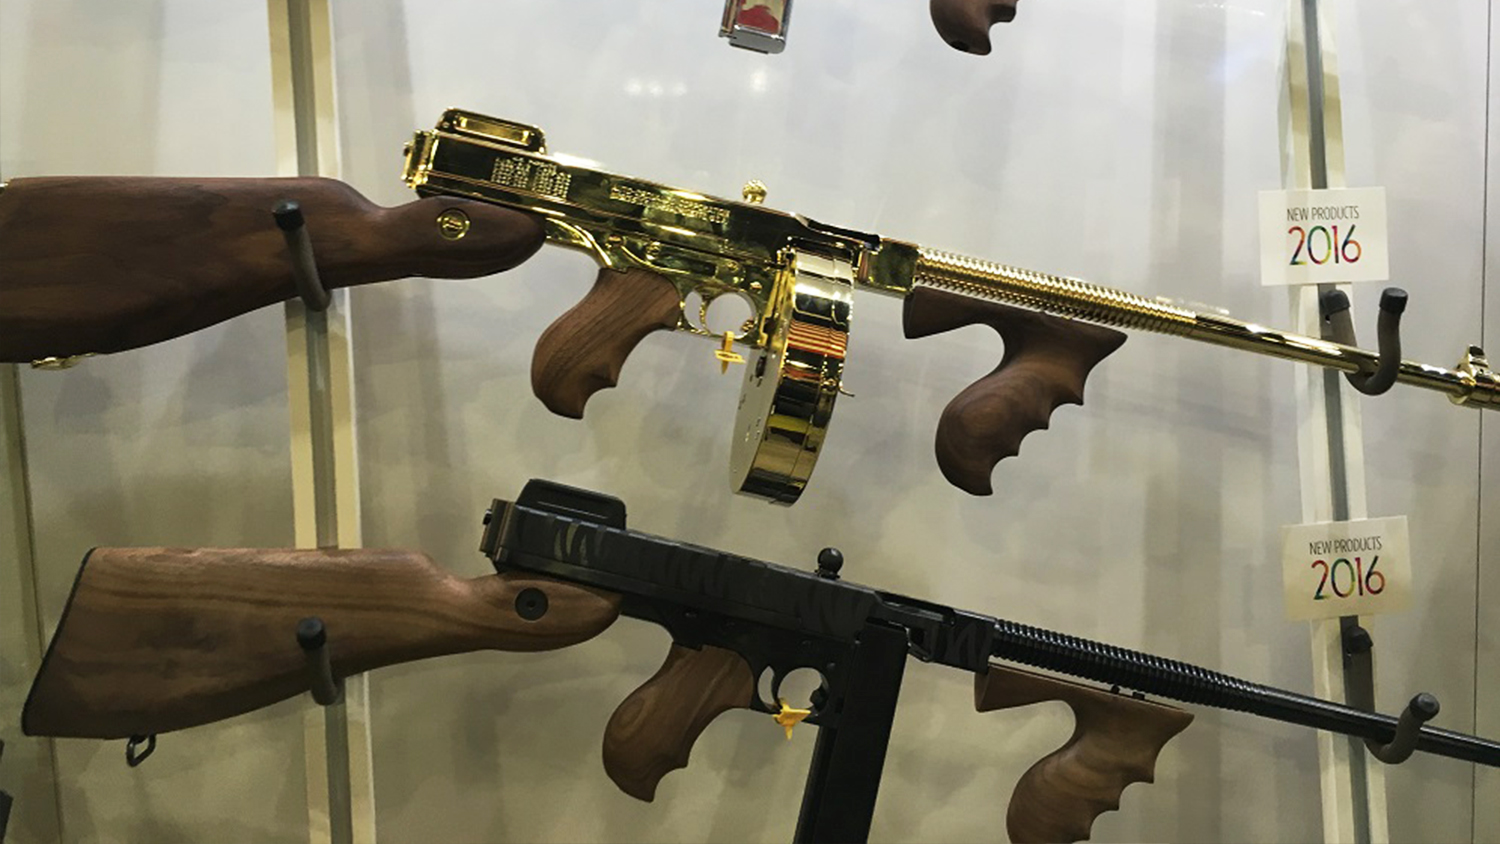 Live from SHOT Show: Kahr Arms Gold Thompson Gun